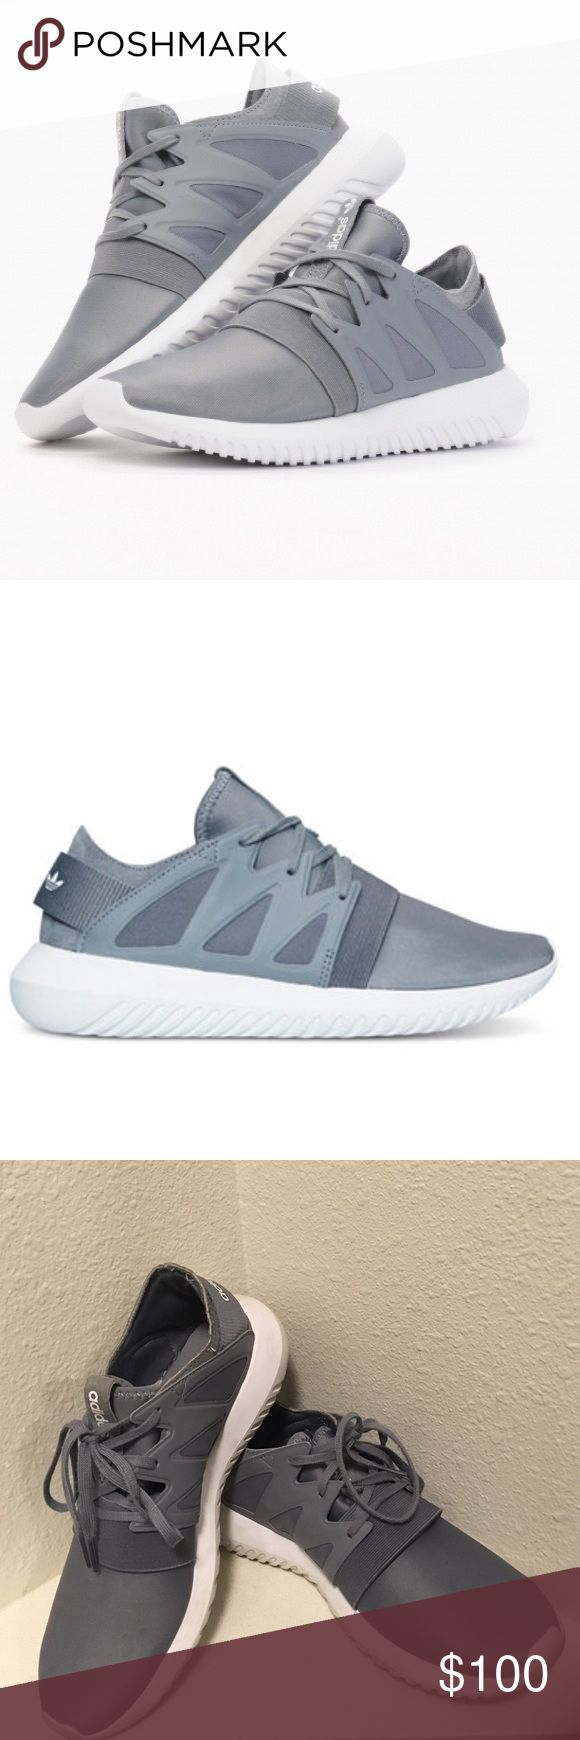 e4a3a1eeb95fe Adidas Tubular Viral Rare and sold out online! Gently used condition 👌🏼  Adidas Shoes Sneakers